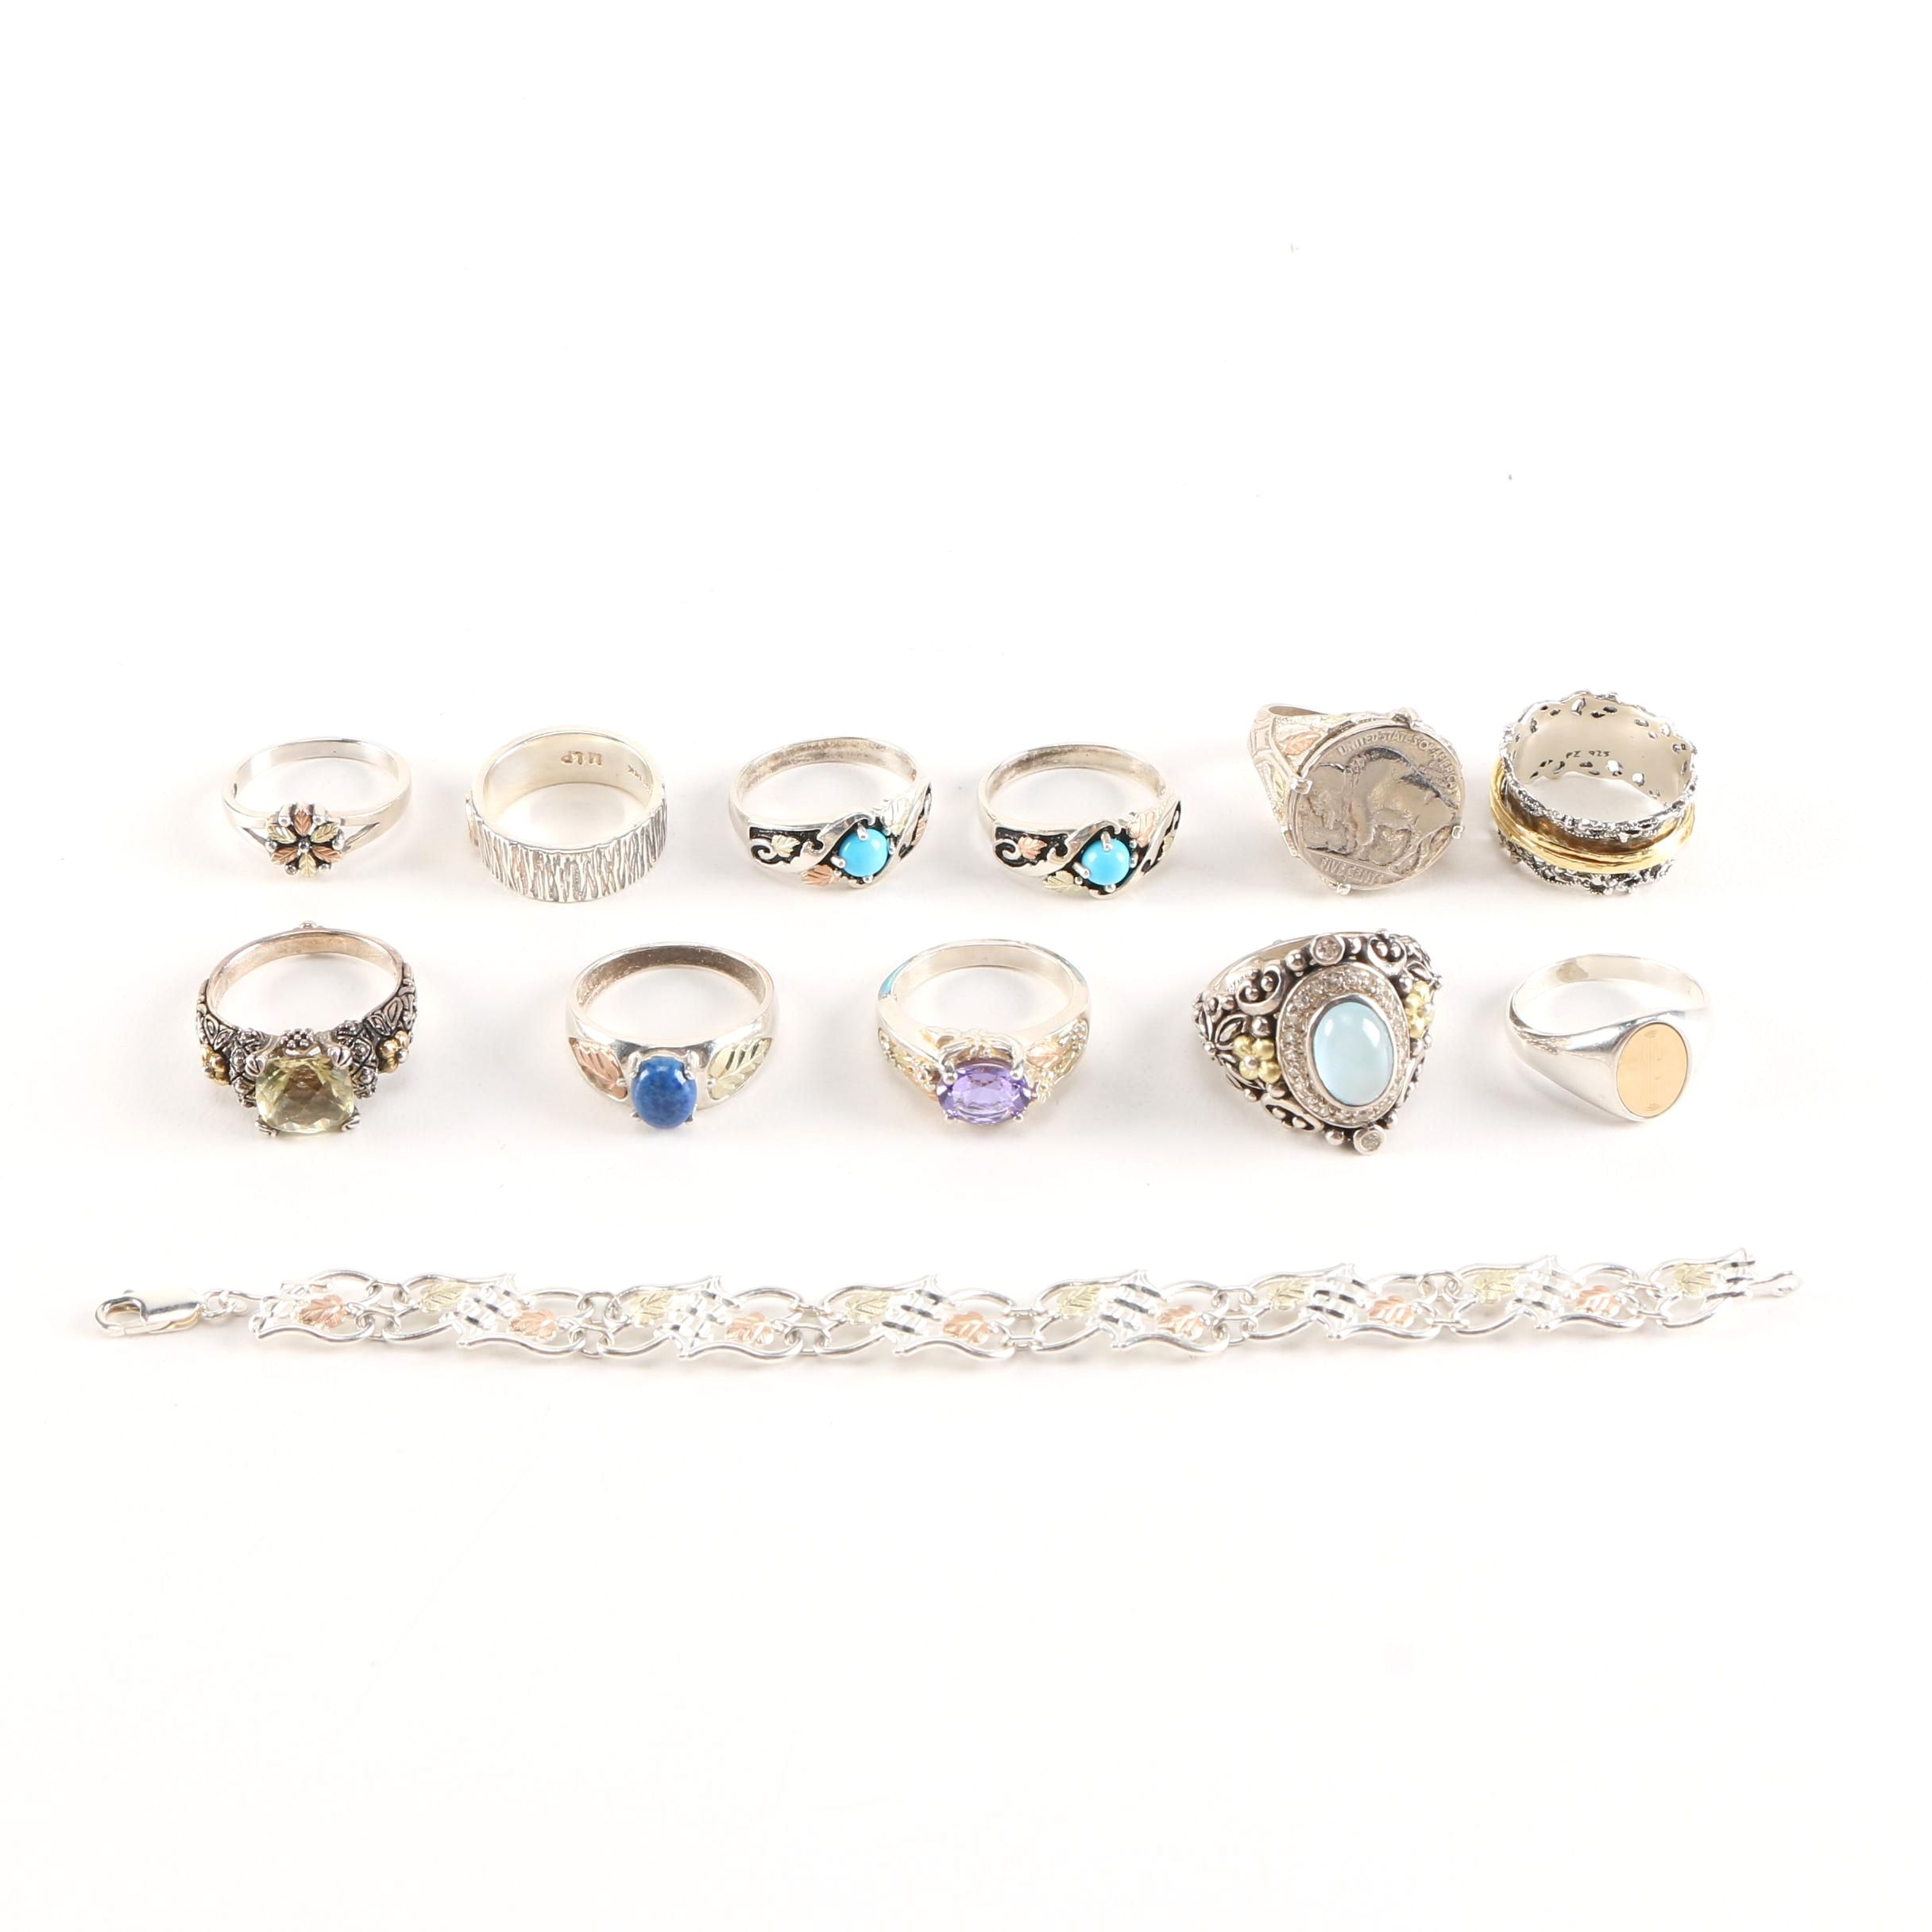 Sterling Silver Rings and Bracelet Featuring Paz and Bixby